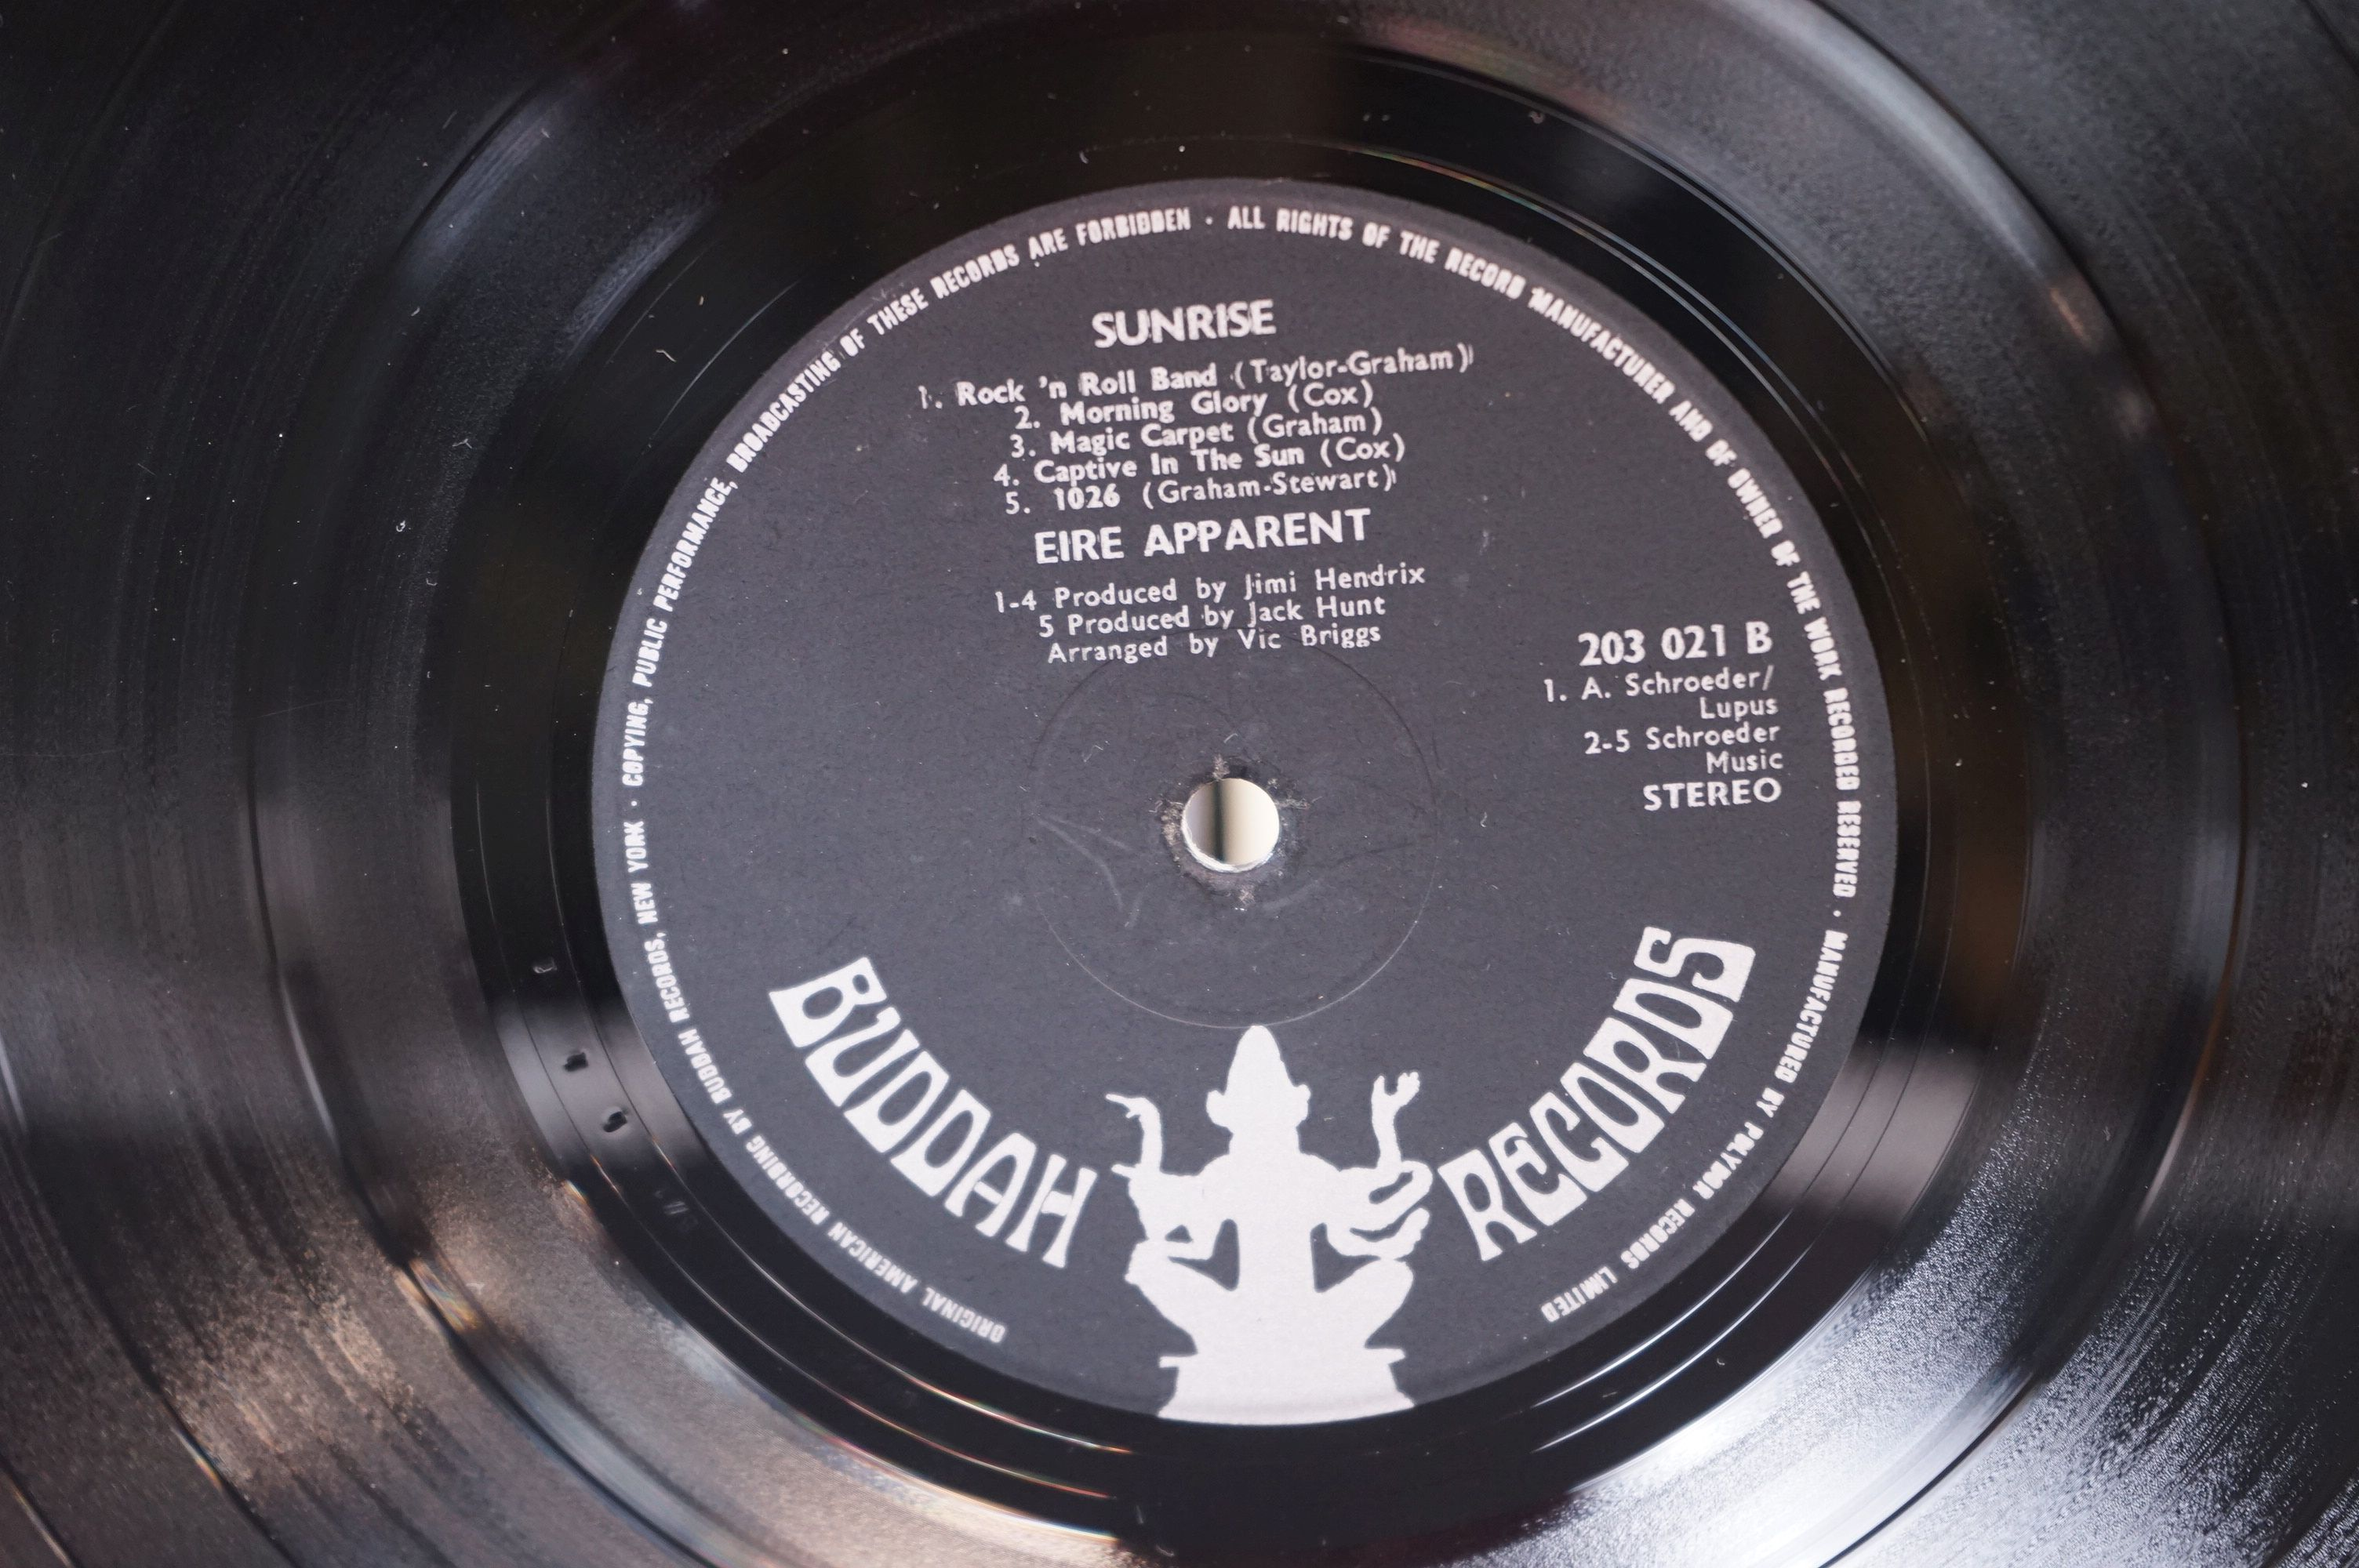 Vinyl - Psych - Eire Apparent - Sunrise (UK 1969,?Buddha Records) Produced by Jimi Hendrix vg+ - Image 3 of 4